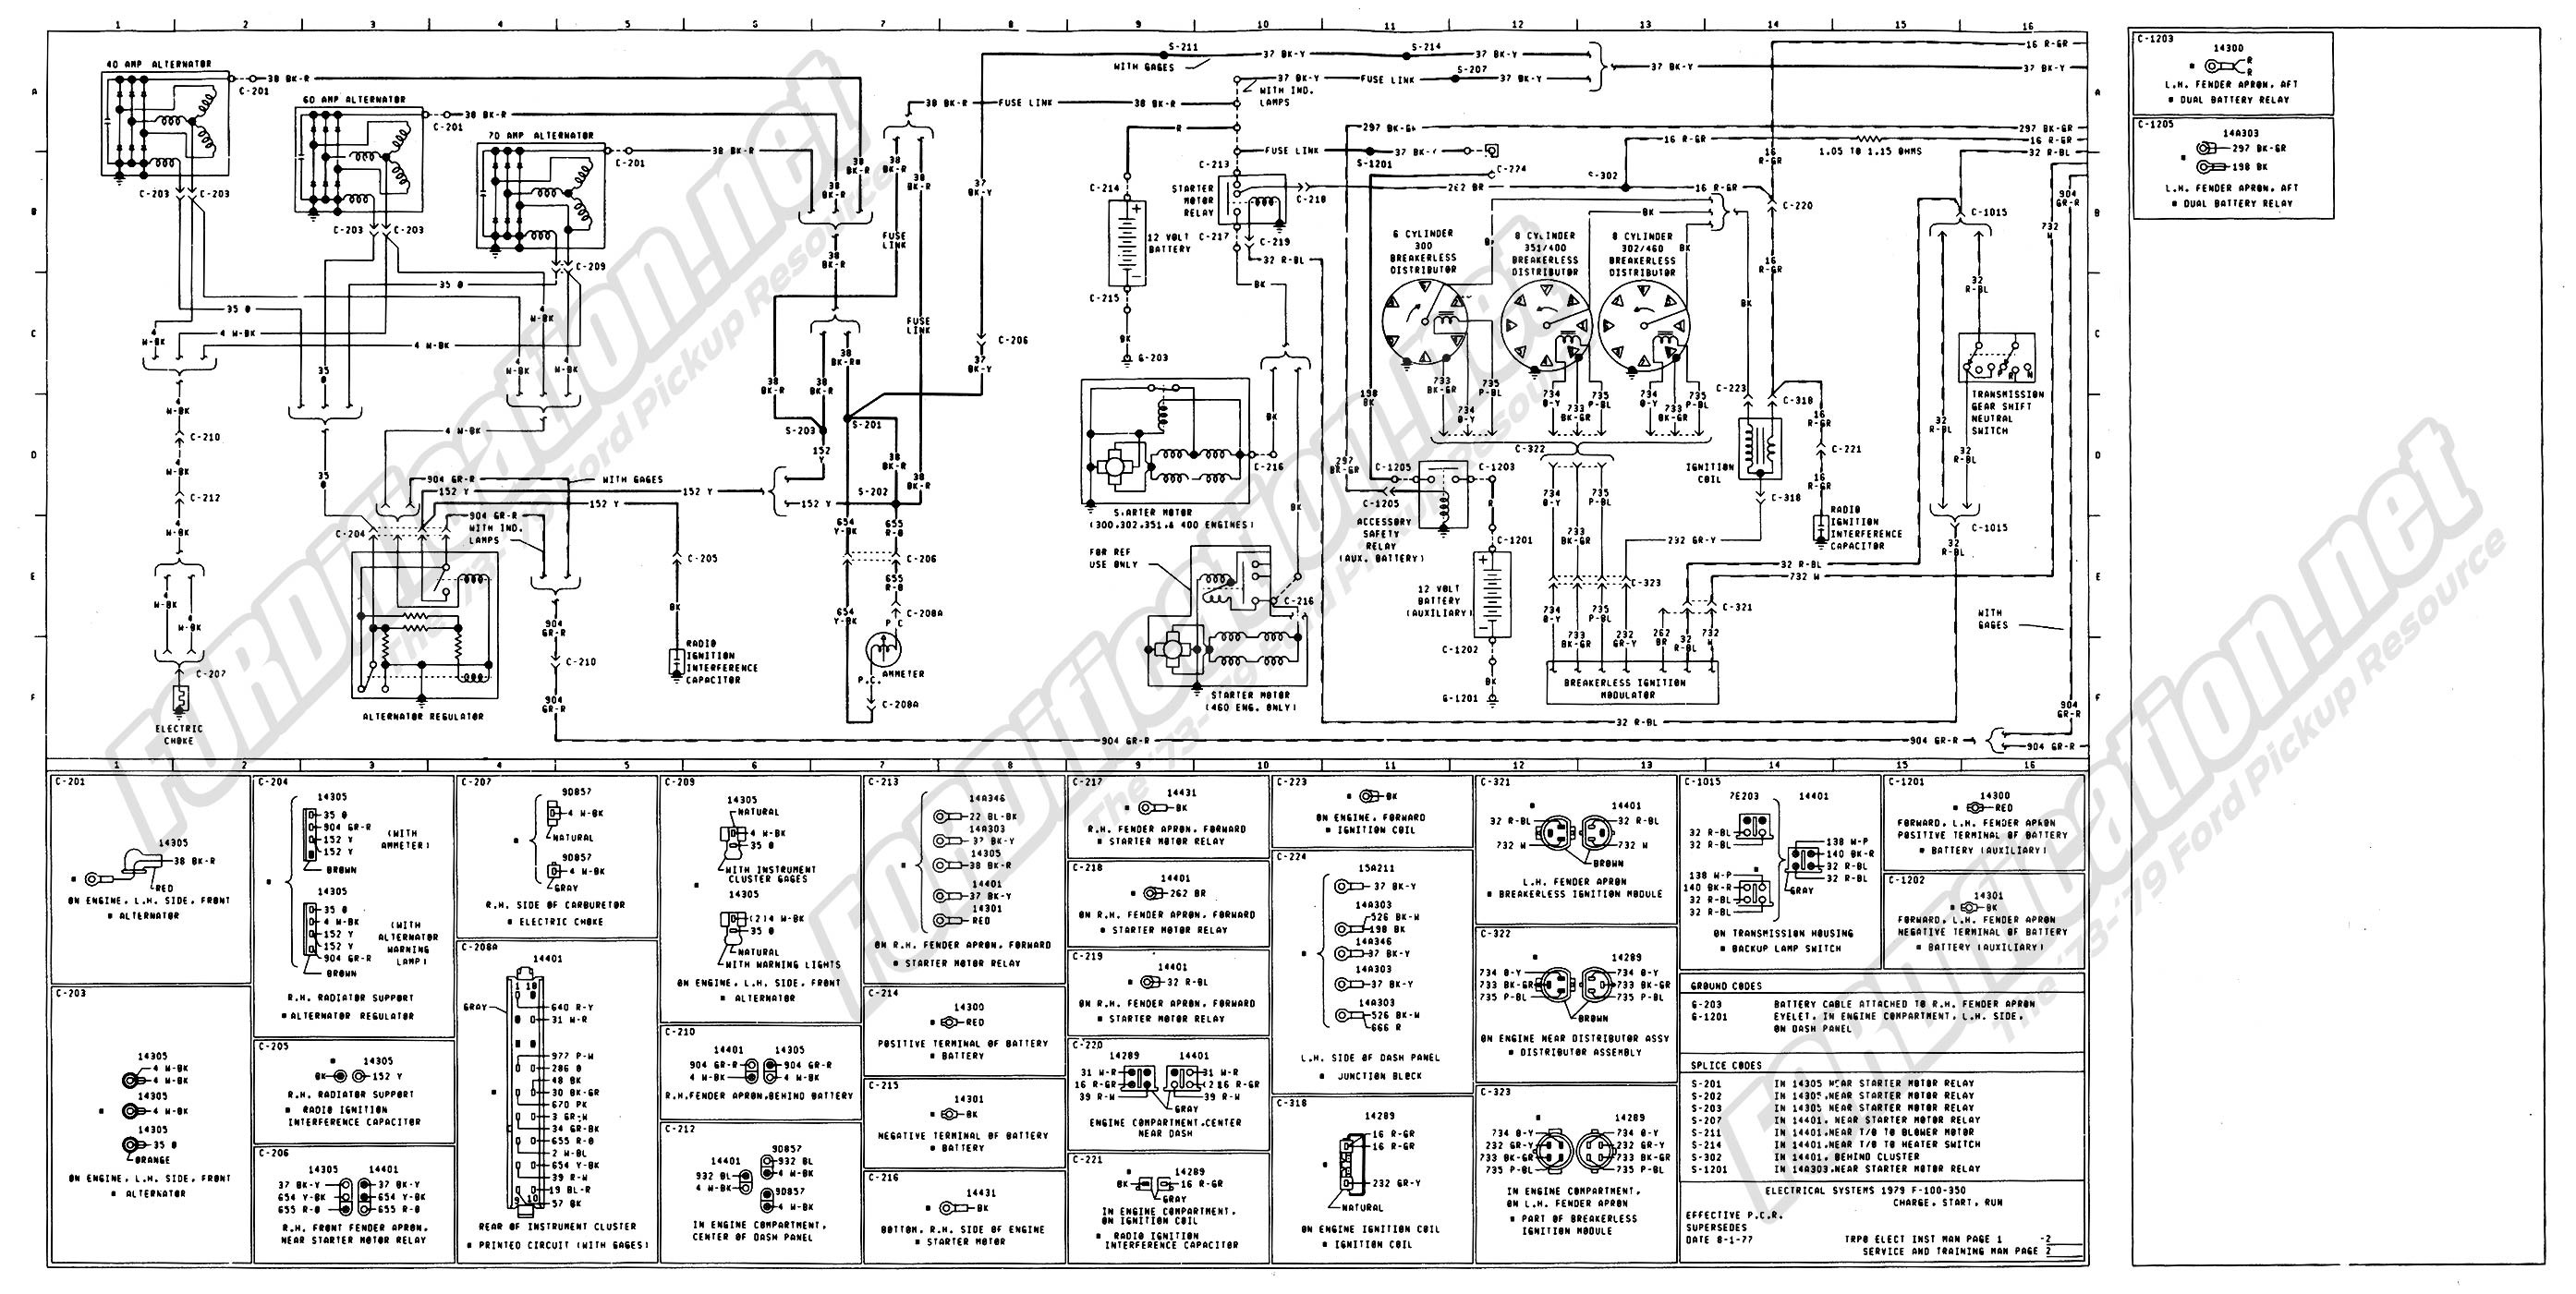 79 Ford F100 Wiring Diagram Wiring Diagram Diode Generator Diode Generator Rilievo3d It